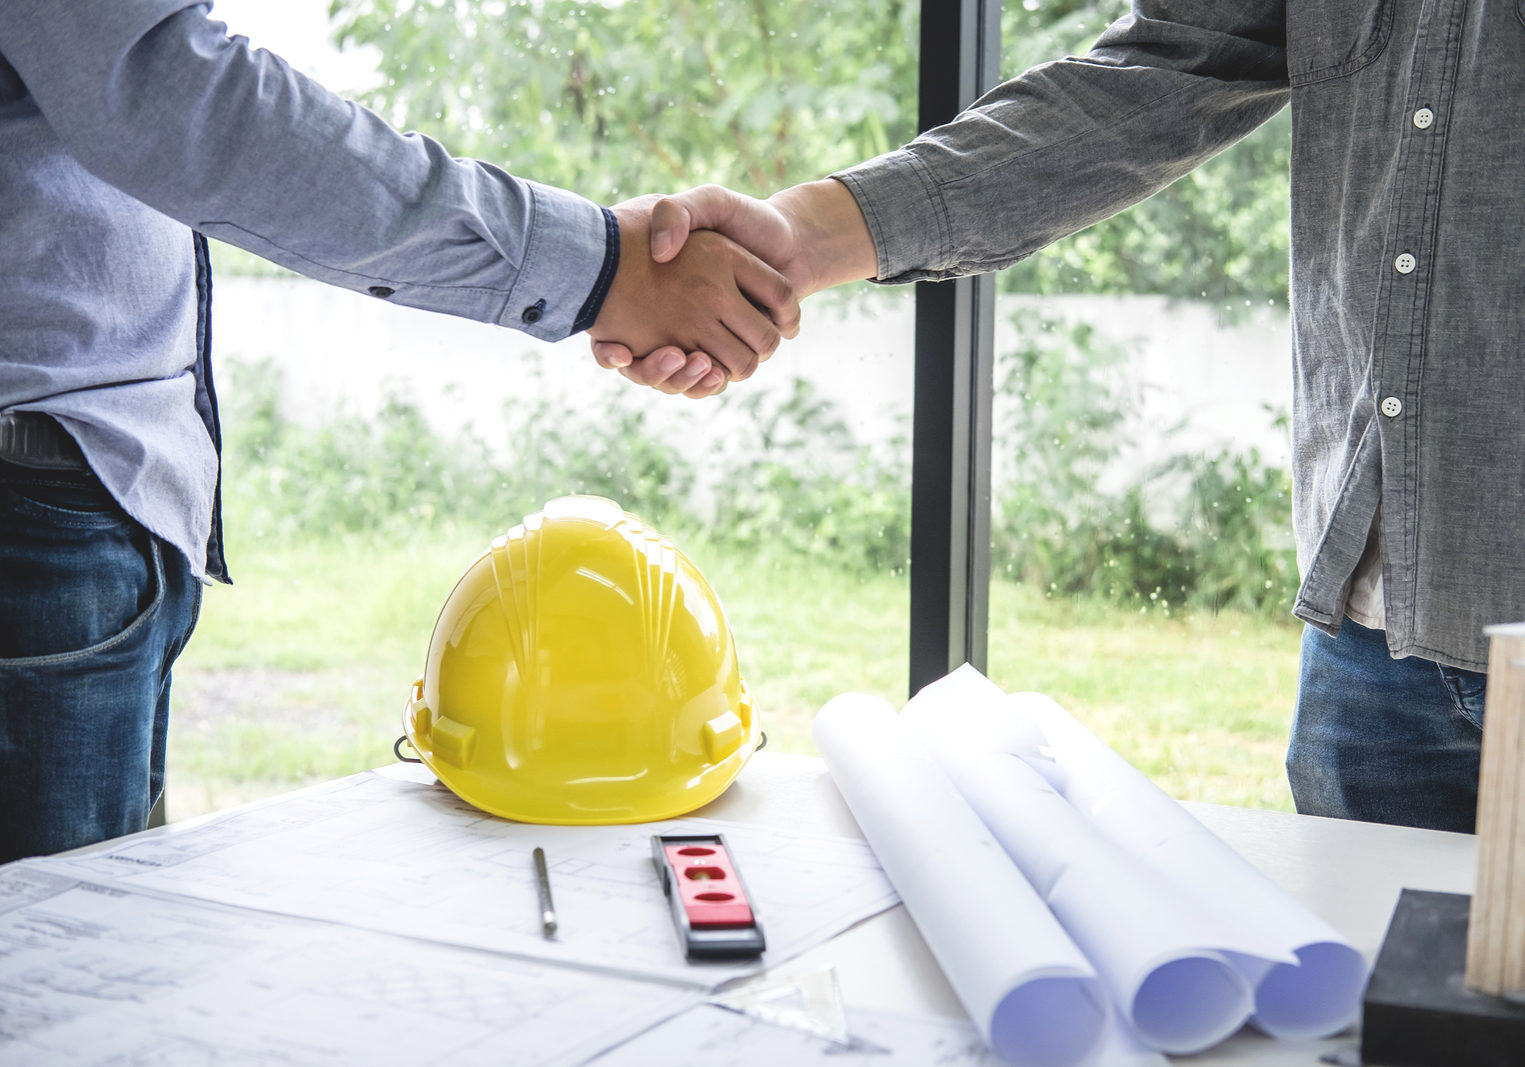 Shaking hands of collaboration, Construction engineering or architect discuss a blueprint while checking information on drawing and sketching, meeting for architectural project of partner.